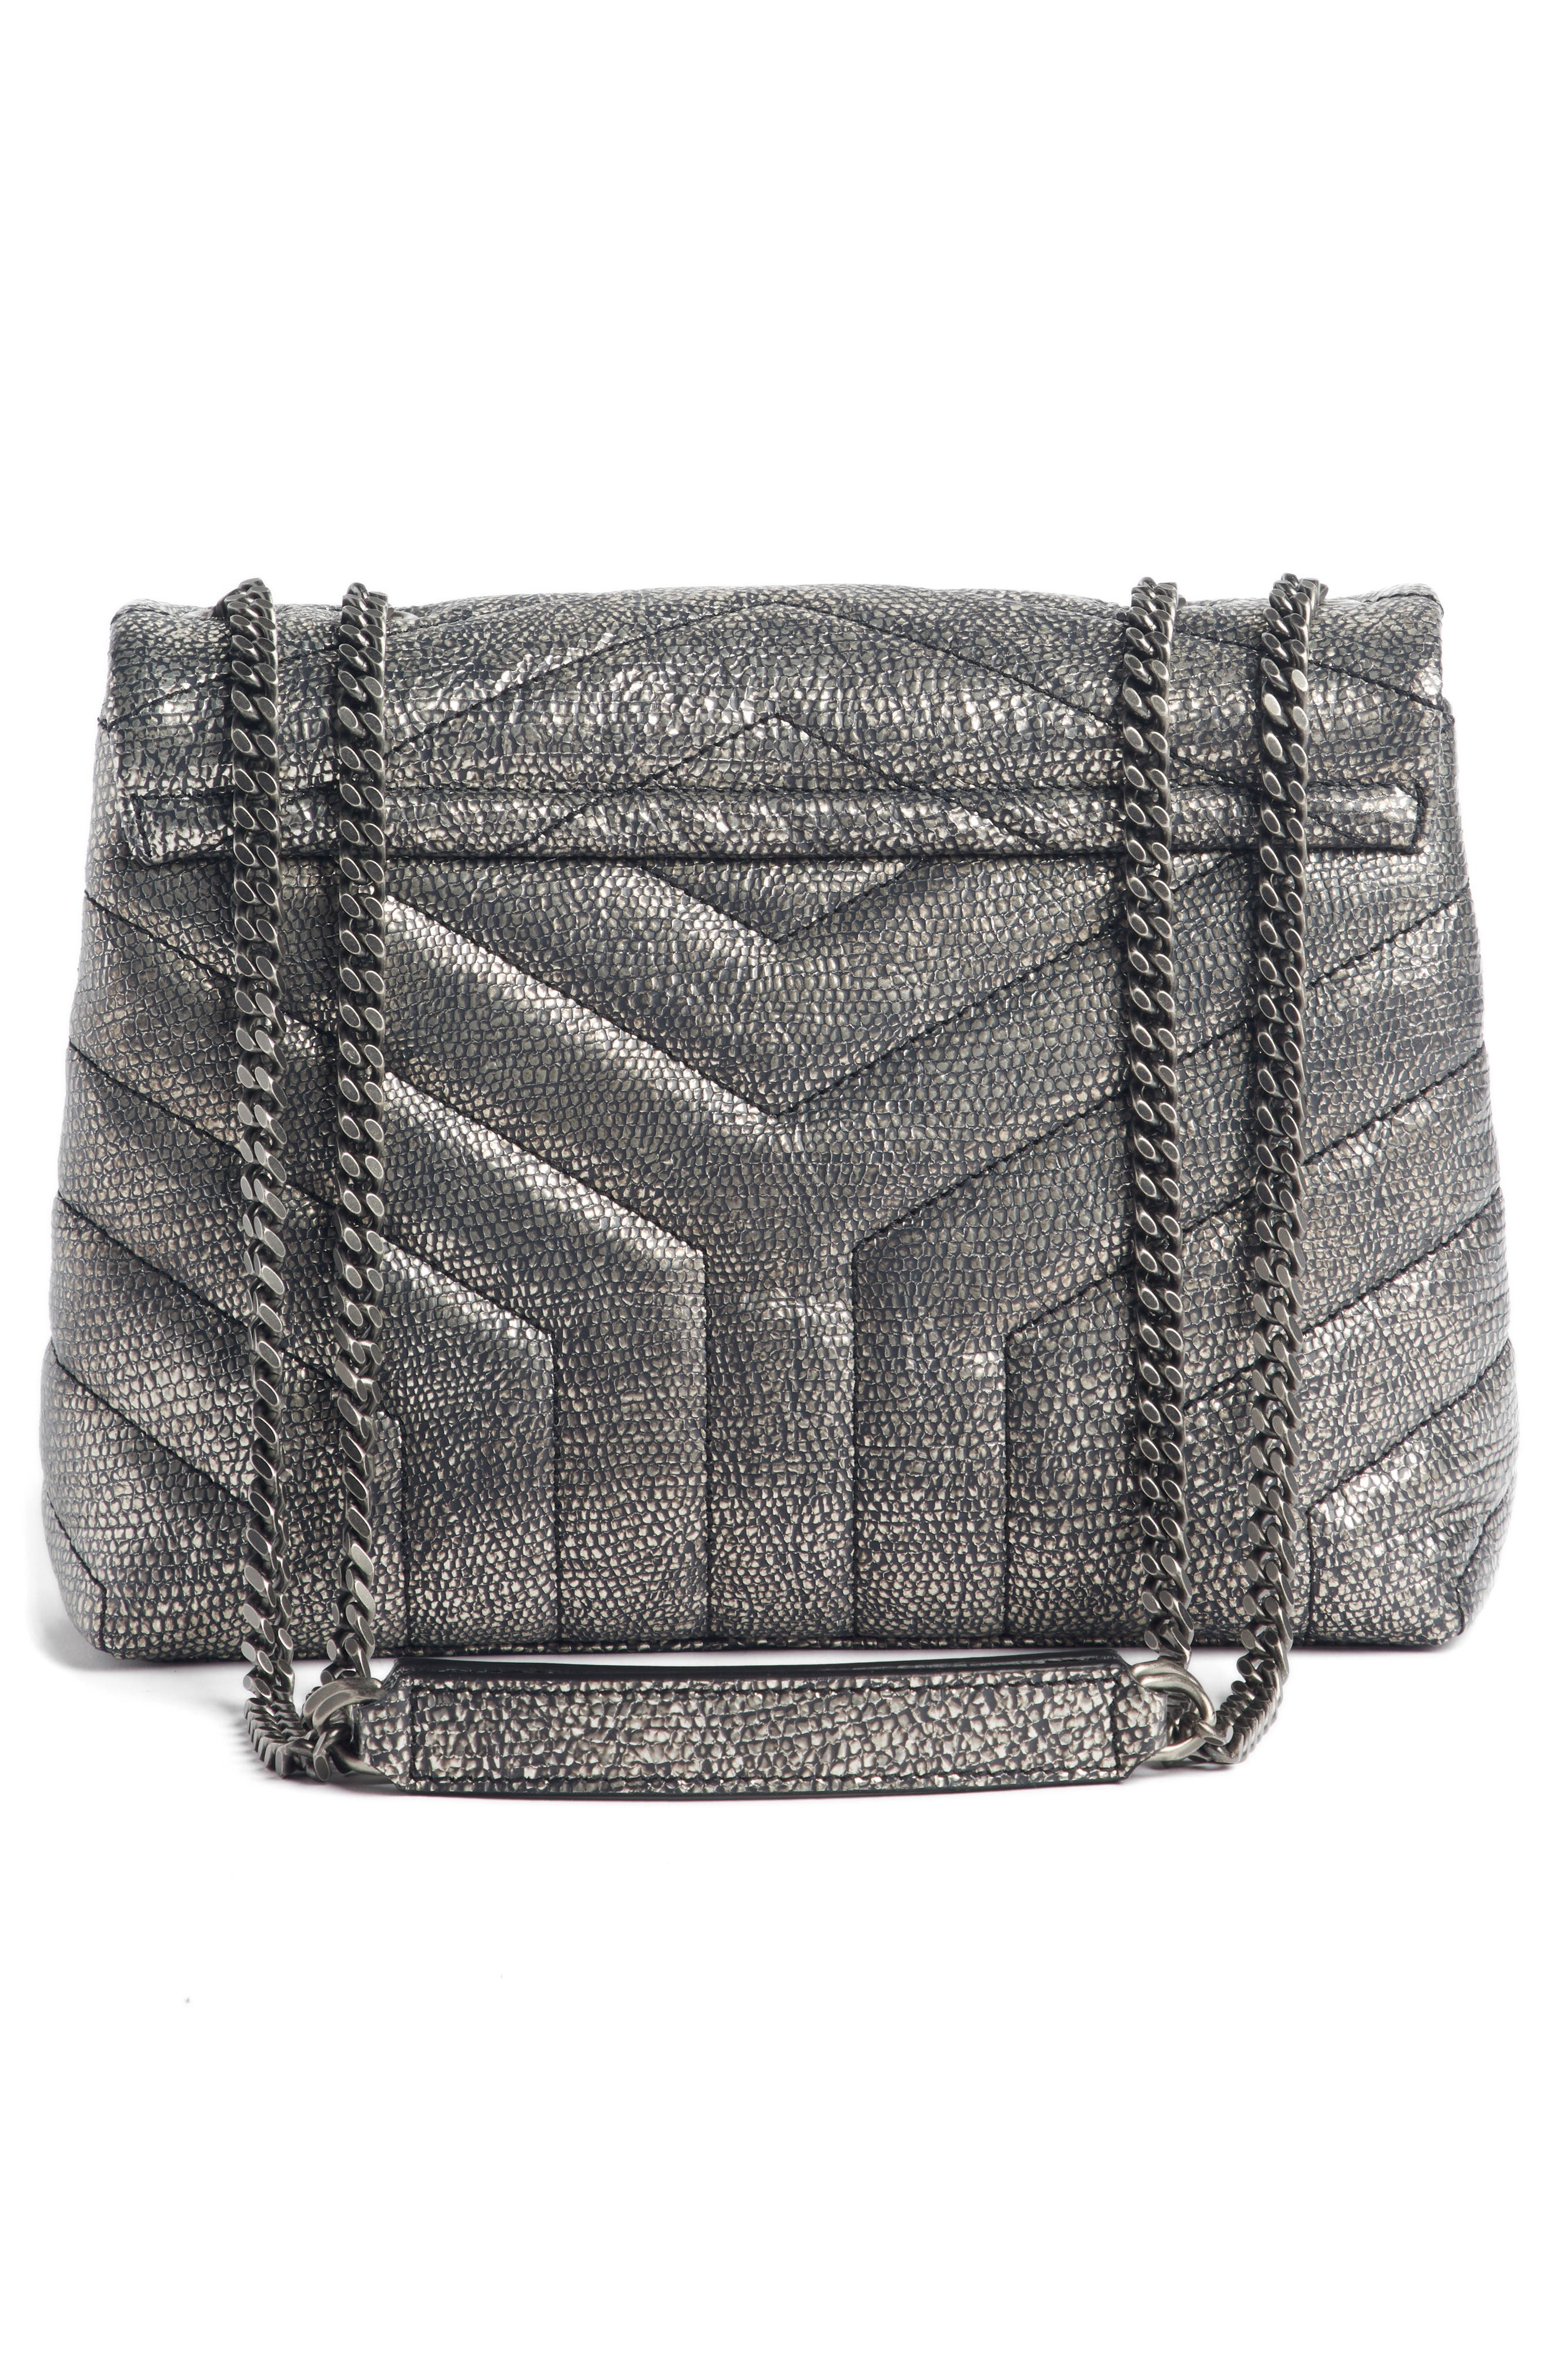 Loulou Small Metallic Leather Shoulder Bag,                             Alternate thumbnail 3, color,                             GRAPHTIE